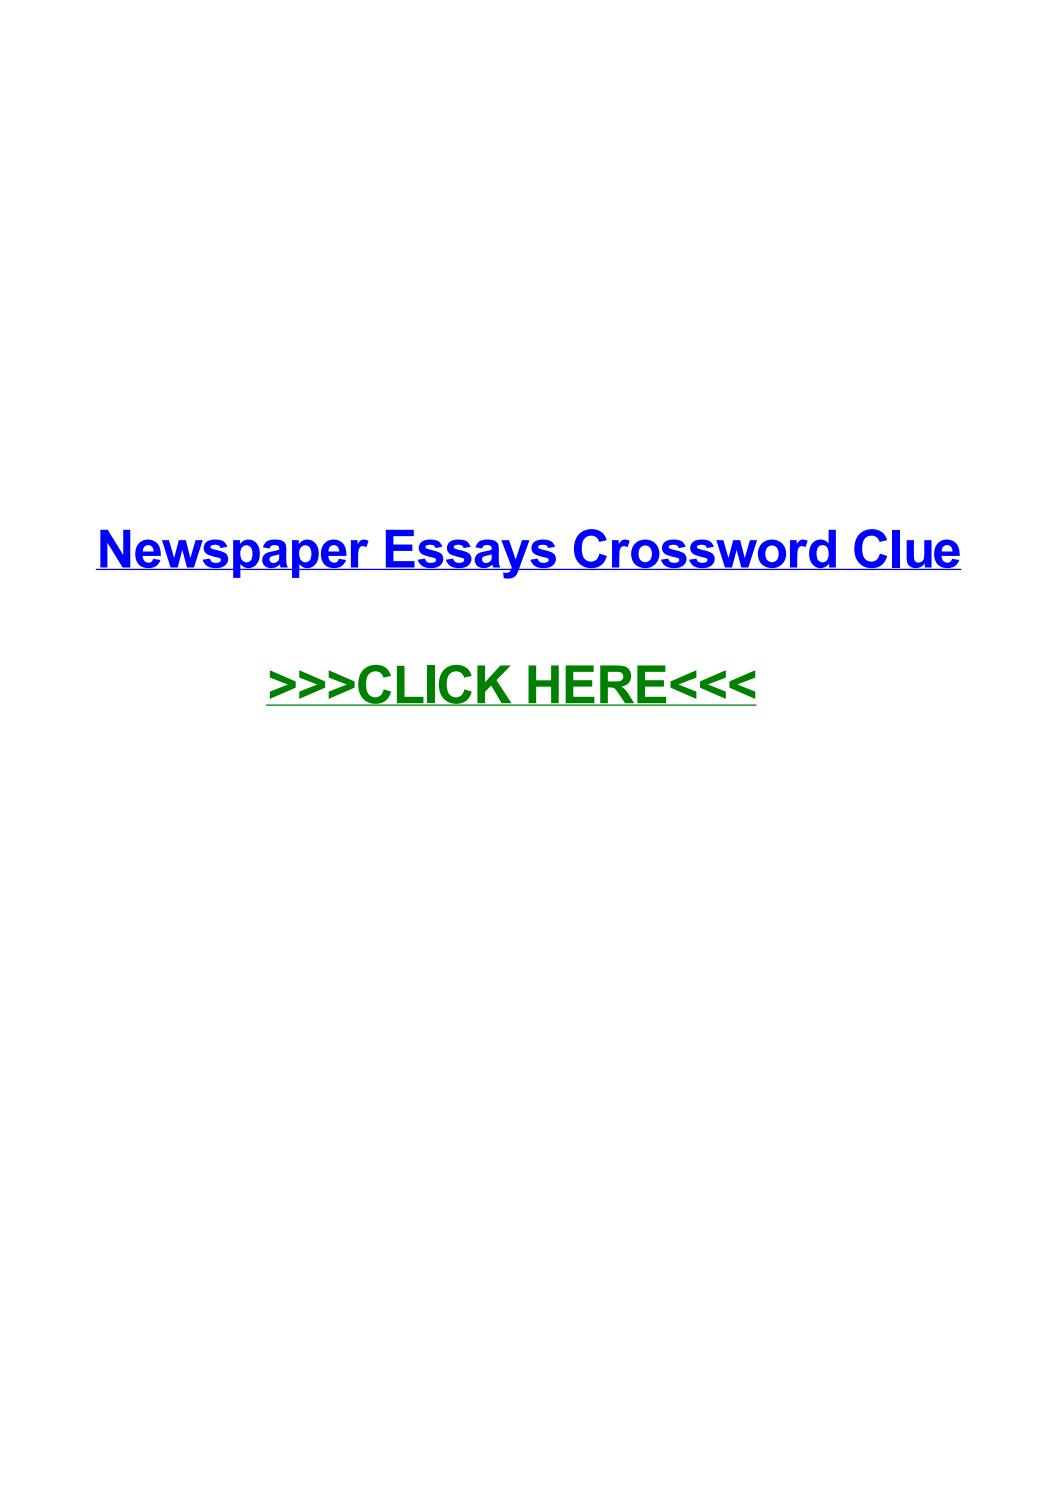 016 Political Essay Crossword Page 1 Dreaded Puzzle Clue Full